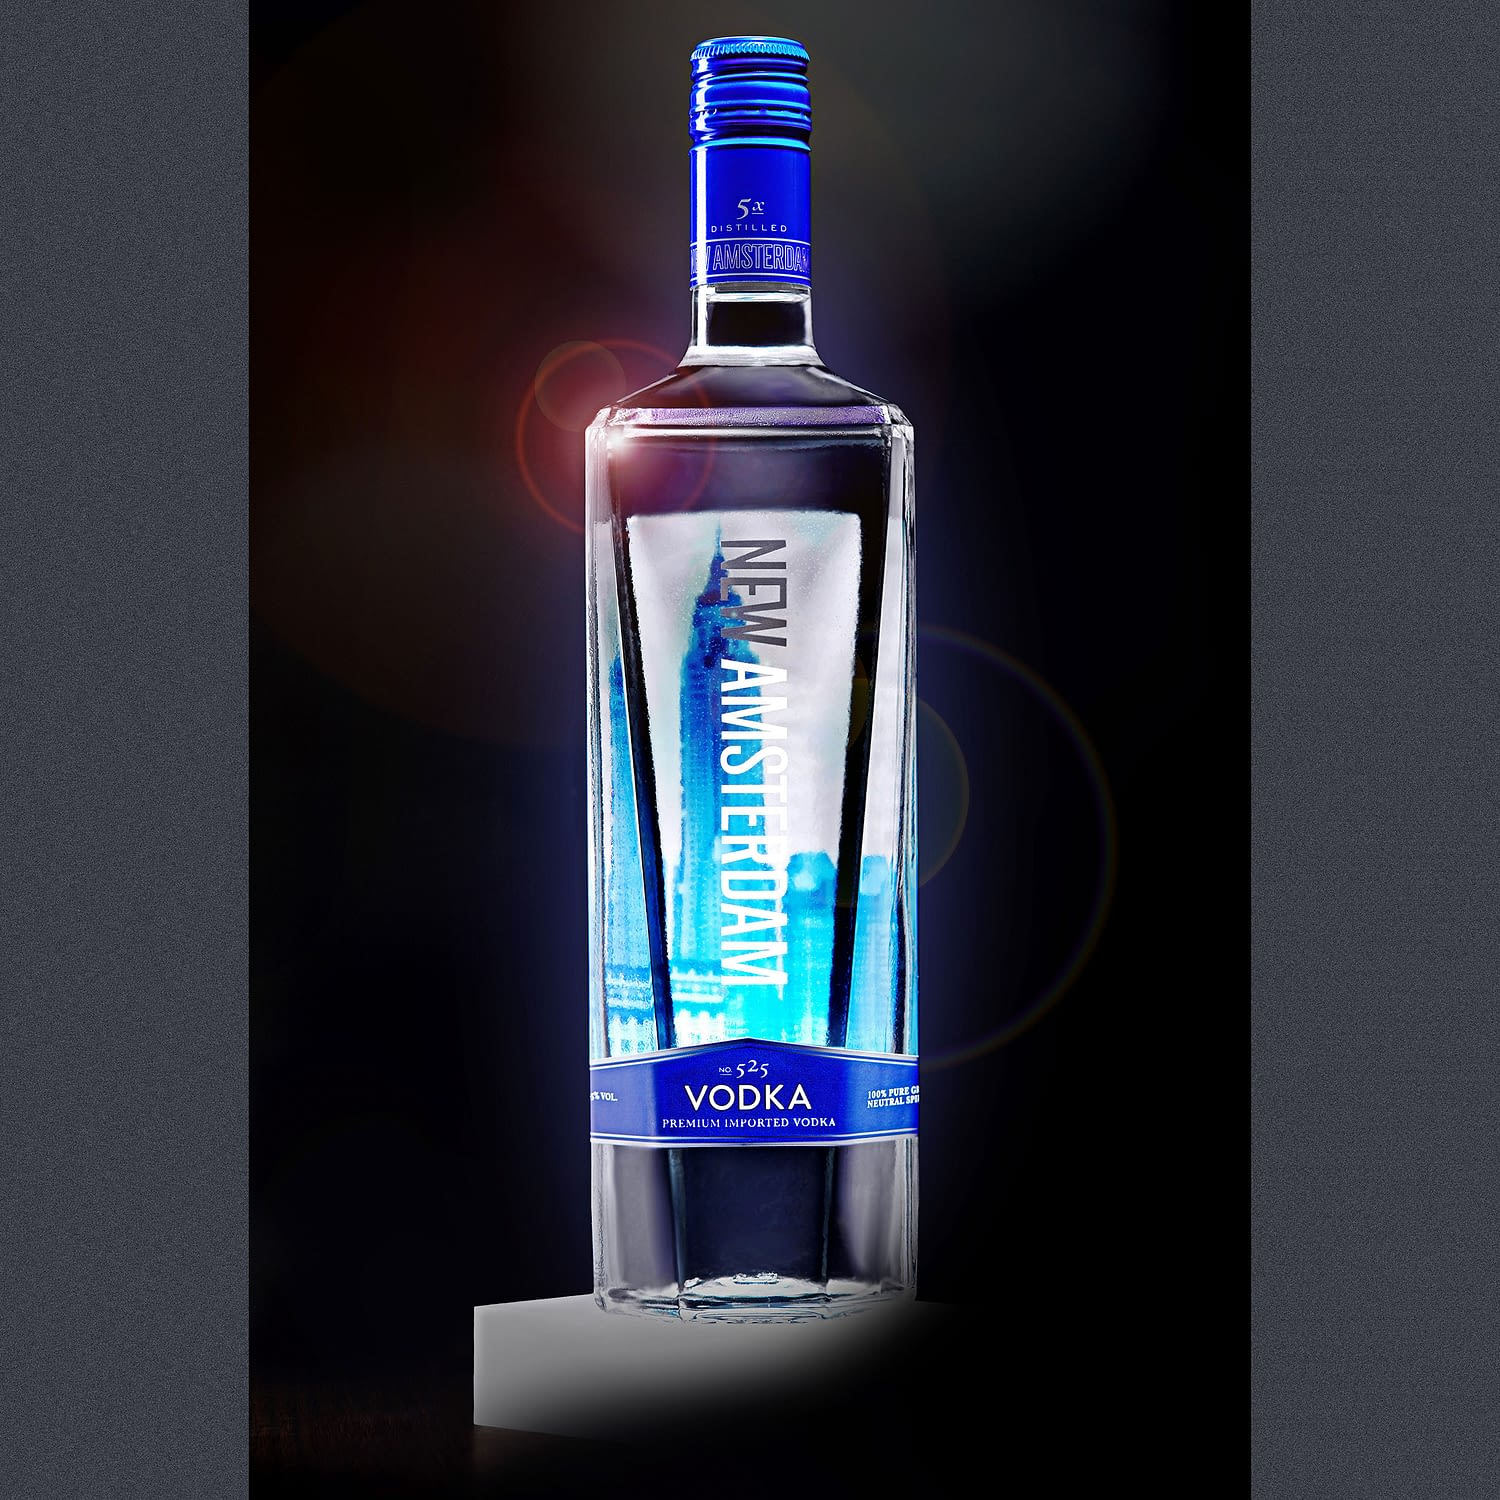 Product shot of New Amsterdam Vodka